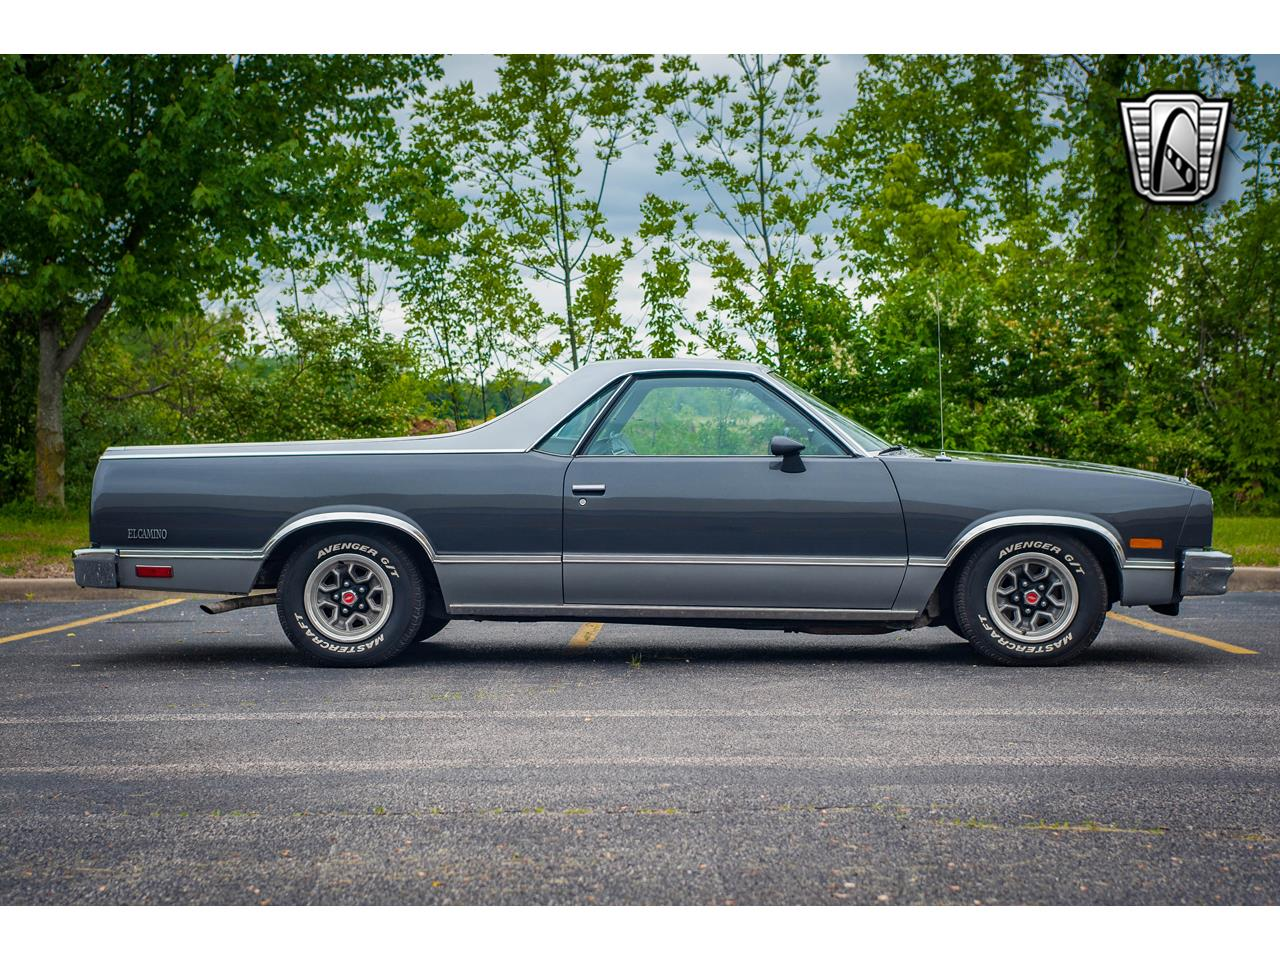 Large Picture of 1982 Chevrolet El Camino located in Illinois - $13,000.00 Offered by Gateway Classic Cars - St. Louis - QB9A